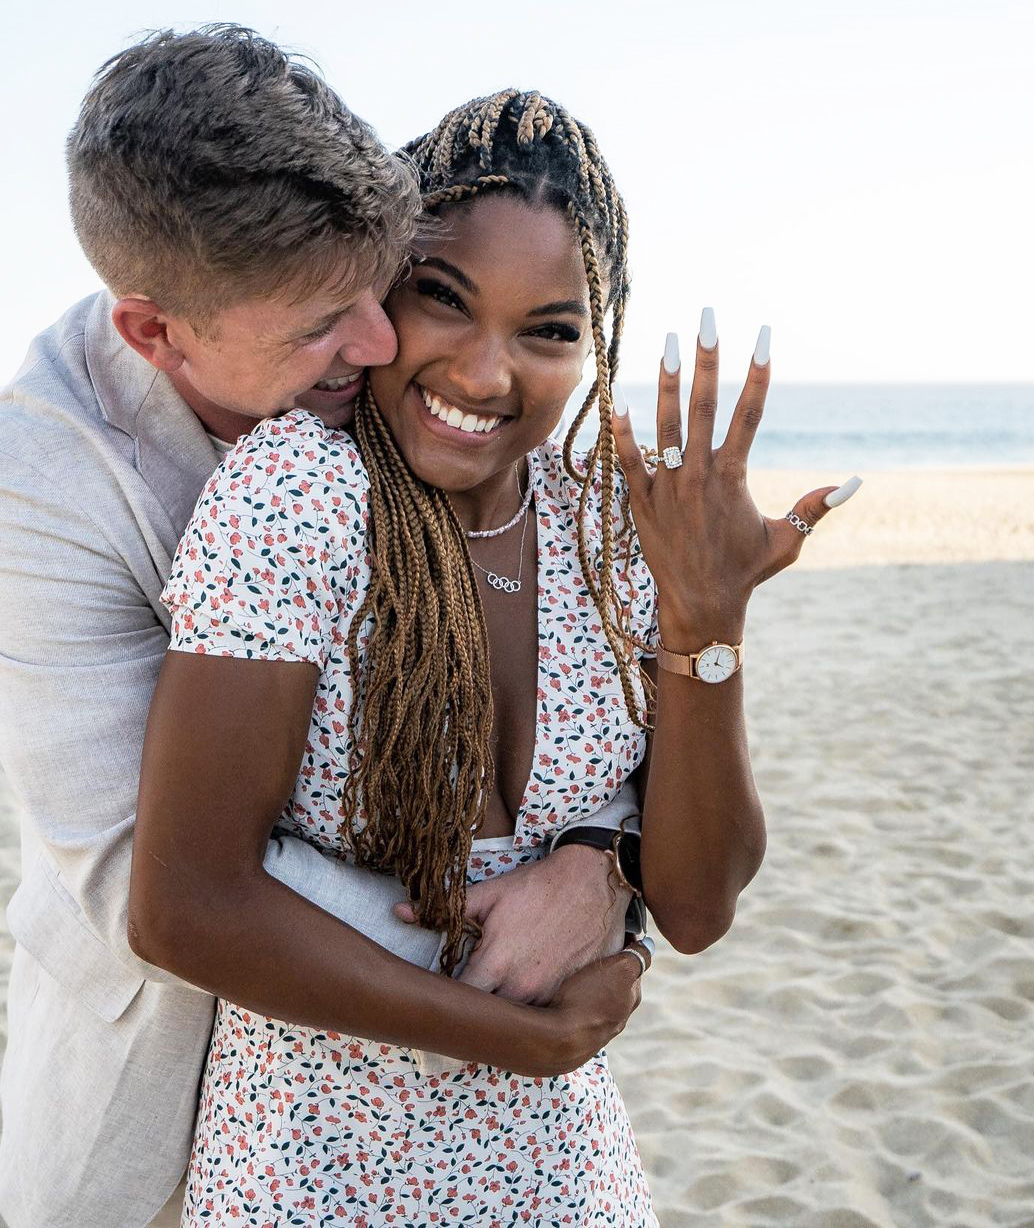 Track and Field Stars Hunter Woodhall and Tara Davis Get Engaged During Romantic Mexican Getaway